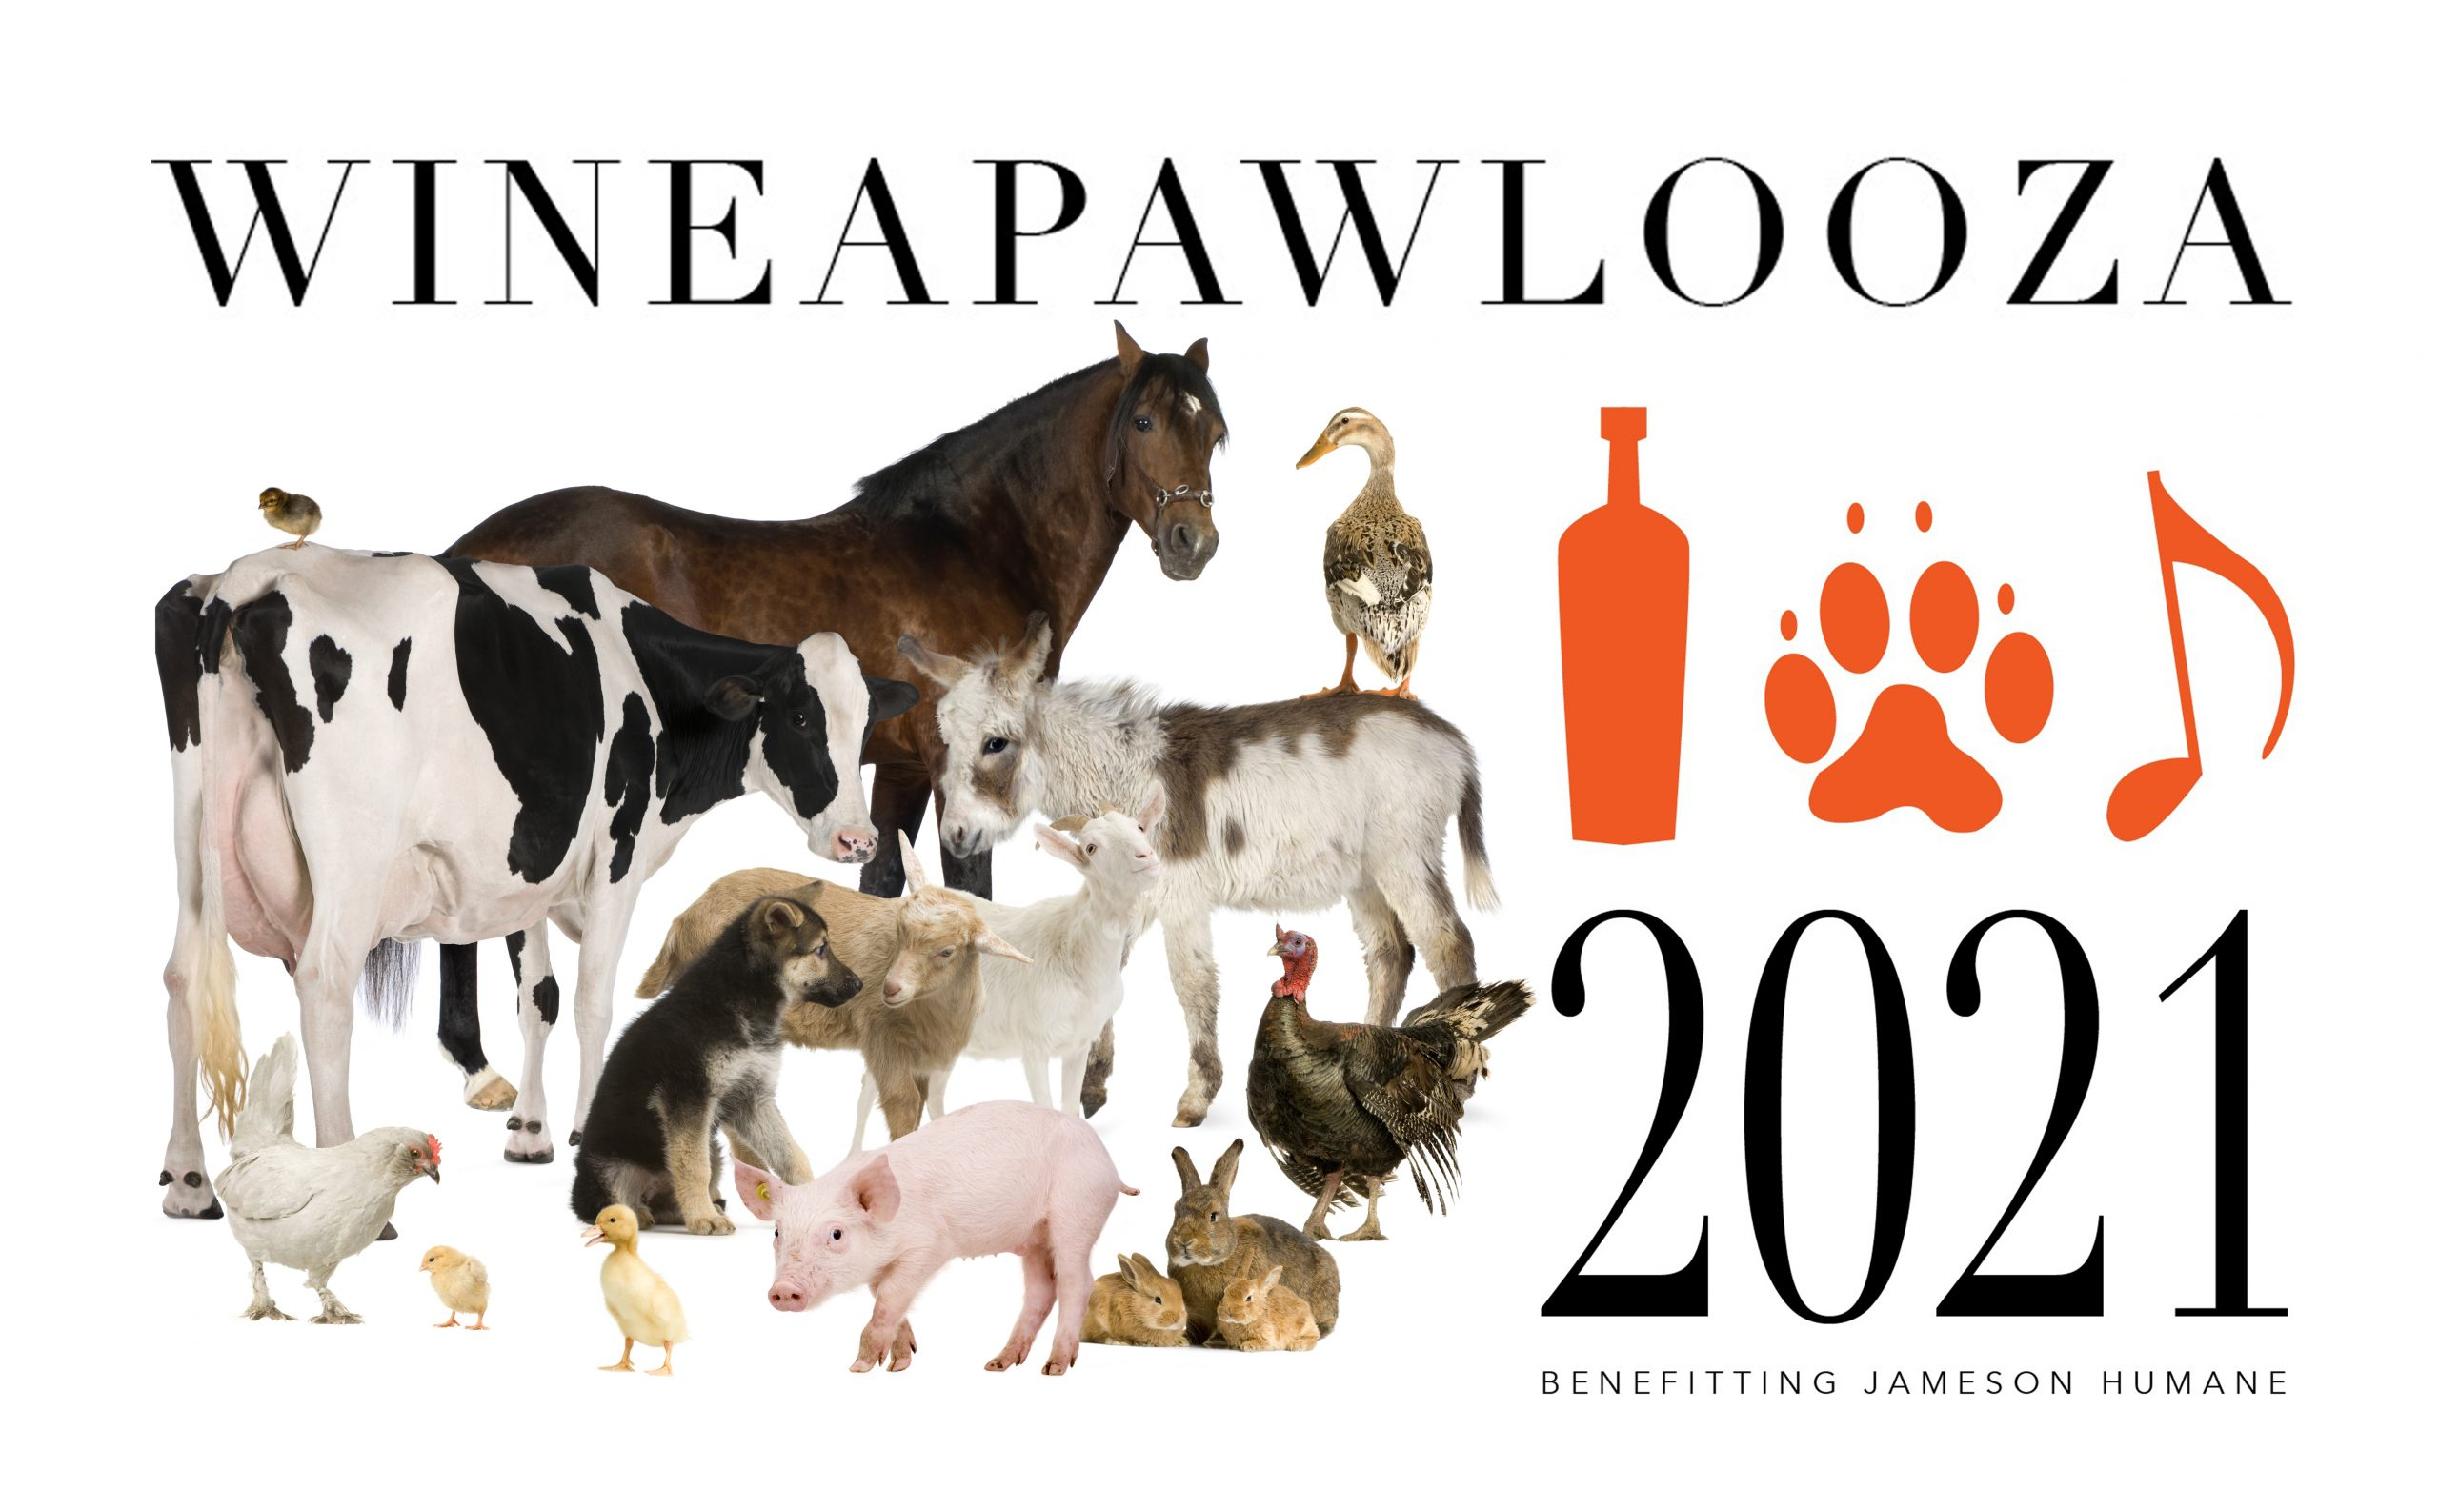 Episode #617 - WineAPawLooza is How Napa Cares for 4-Legged and Feathered Friends!